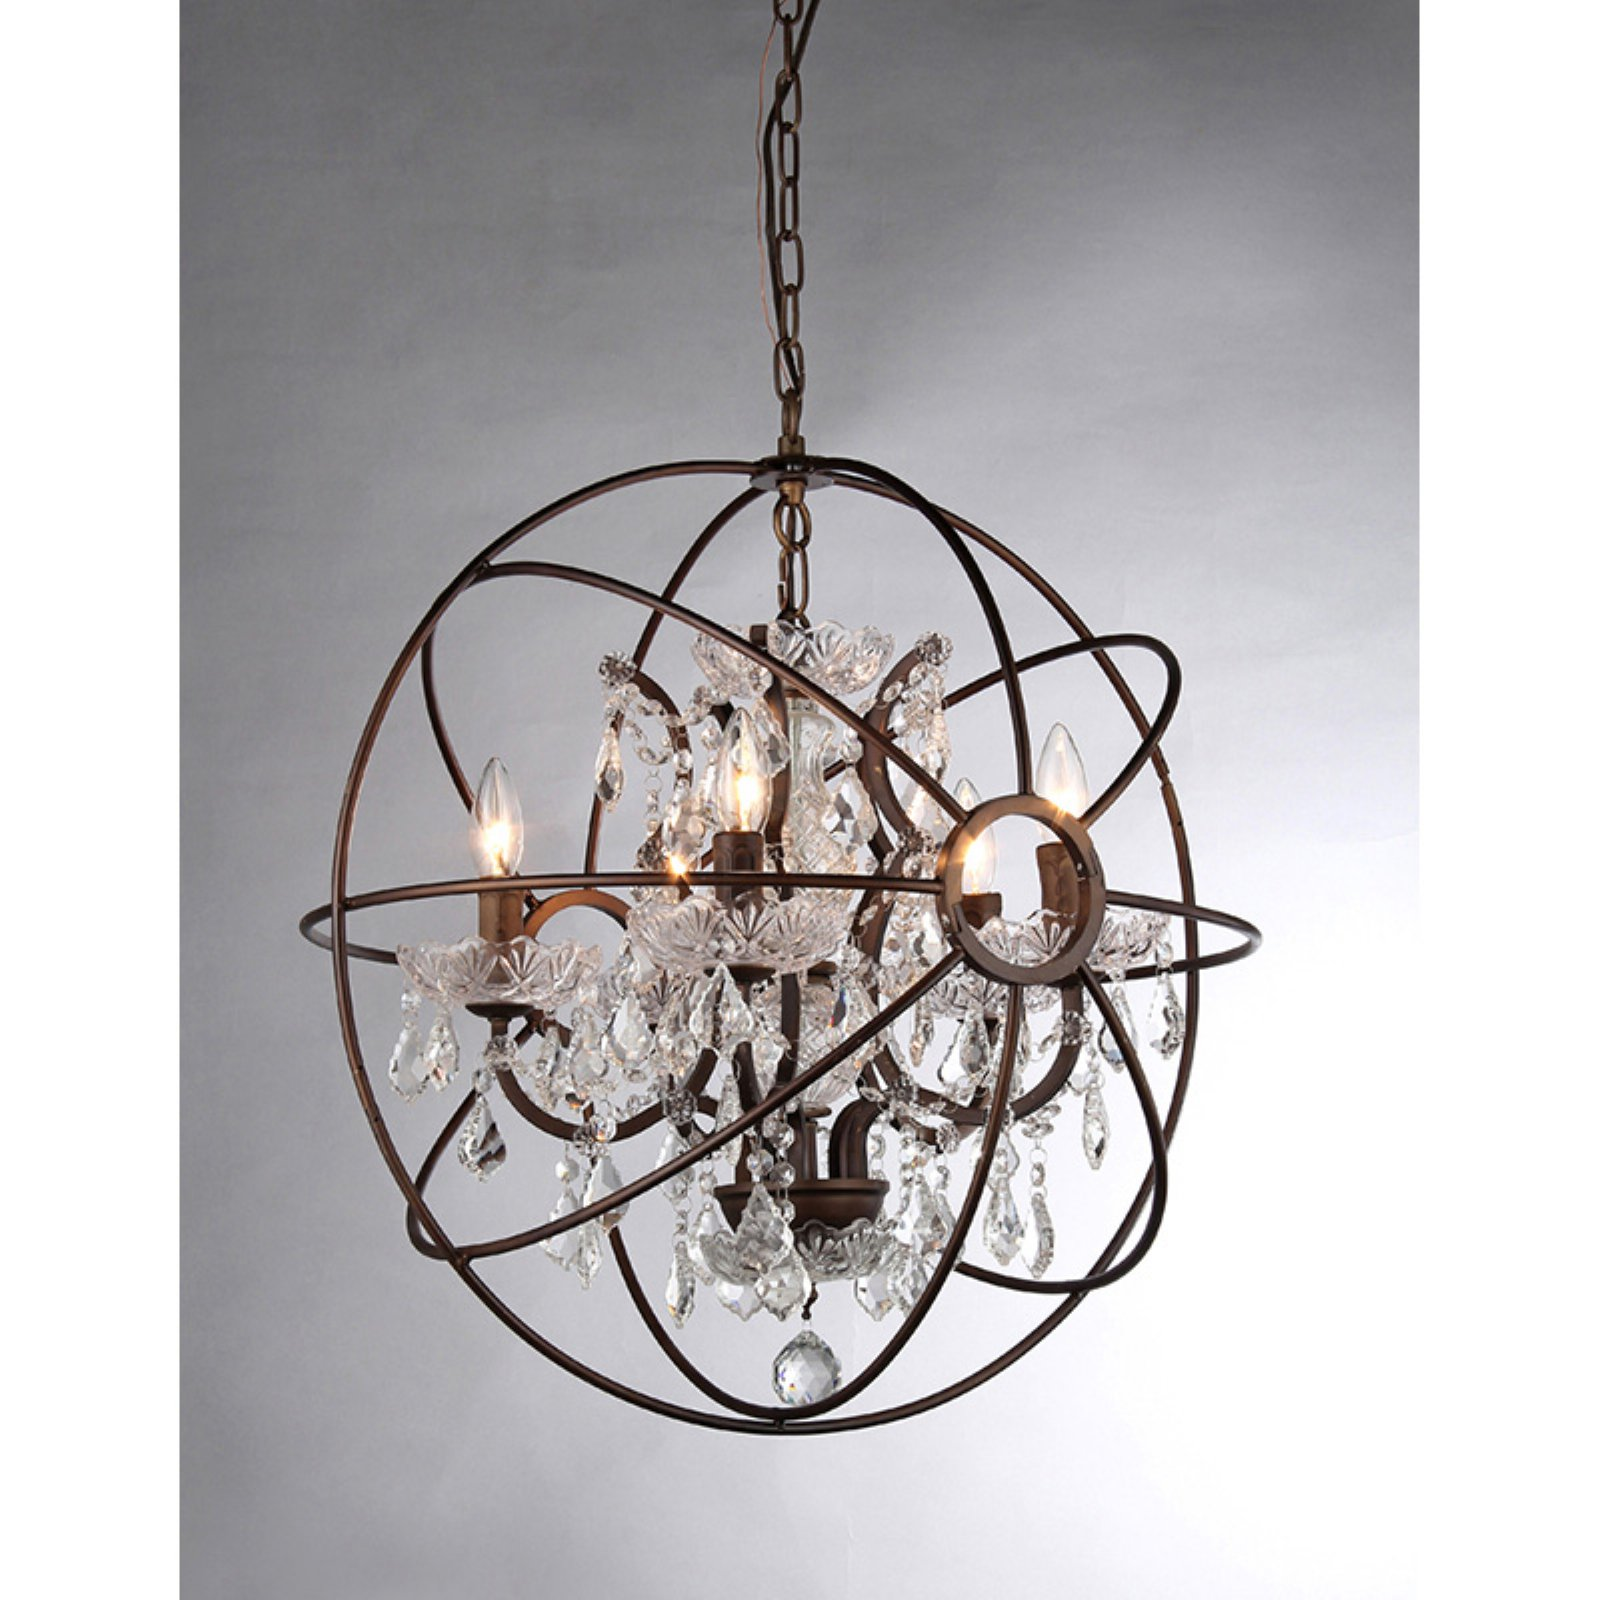 Warehouse of Tiffany Planet Shaker RL8060A Crystal Chandelier